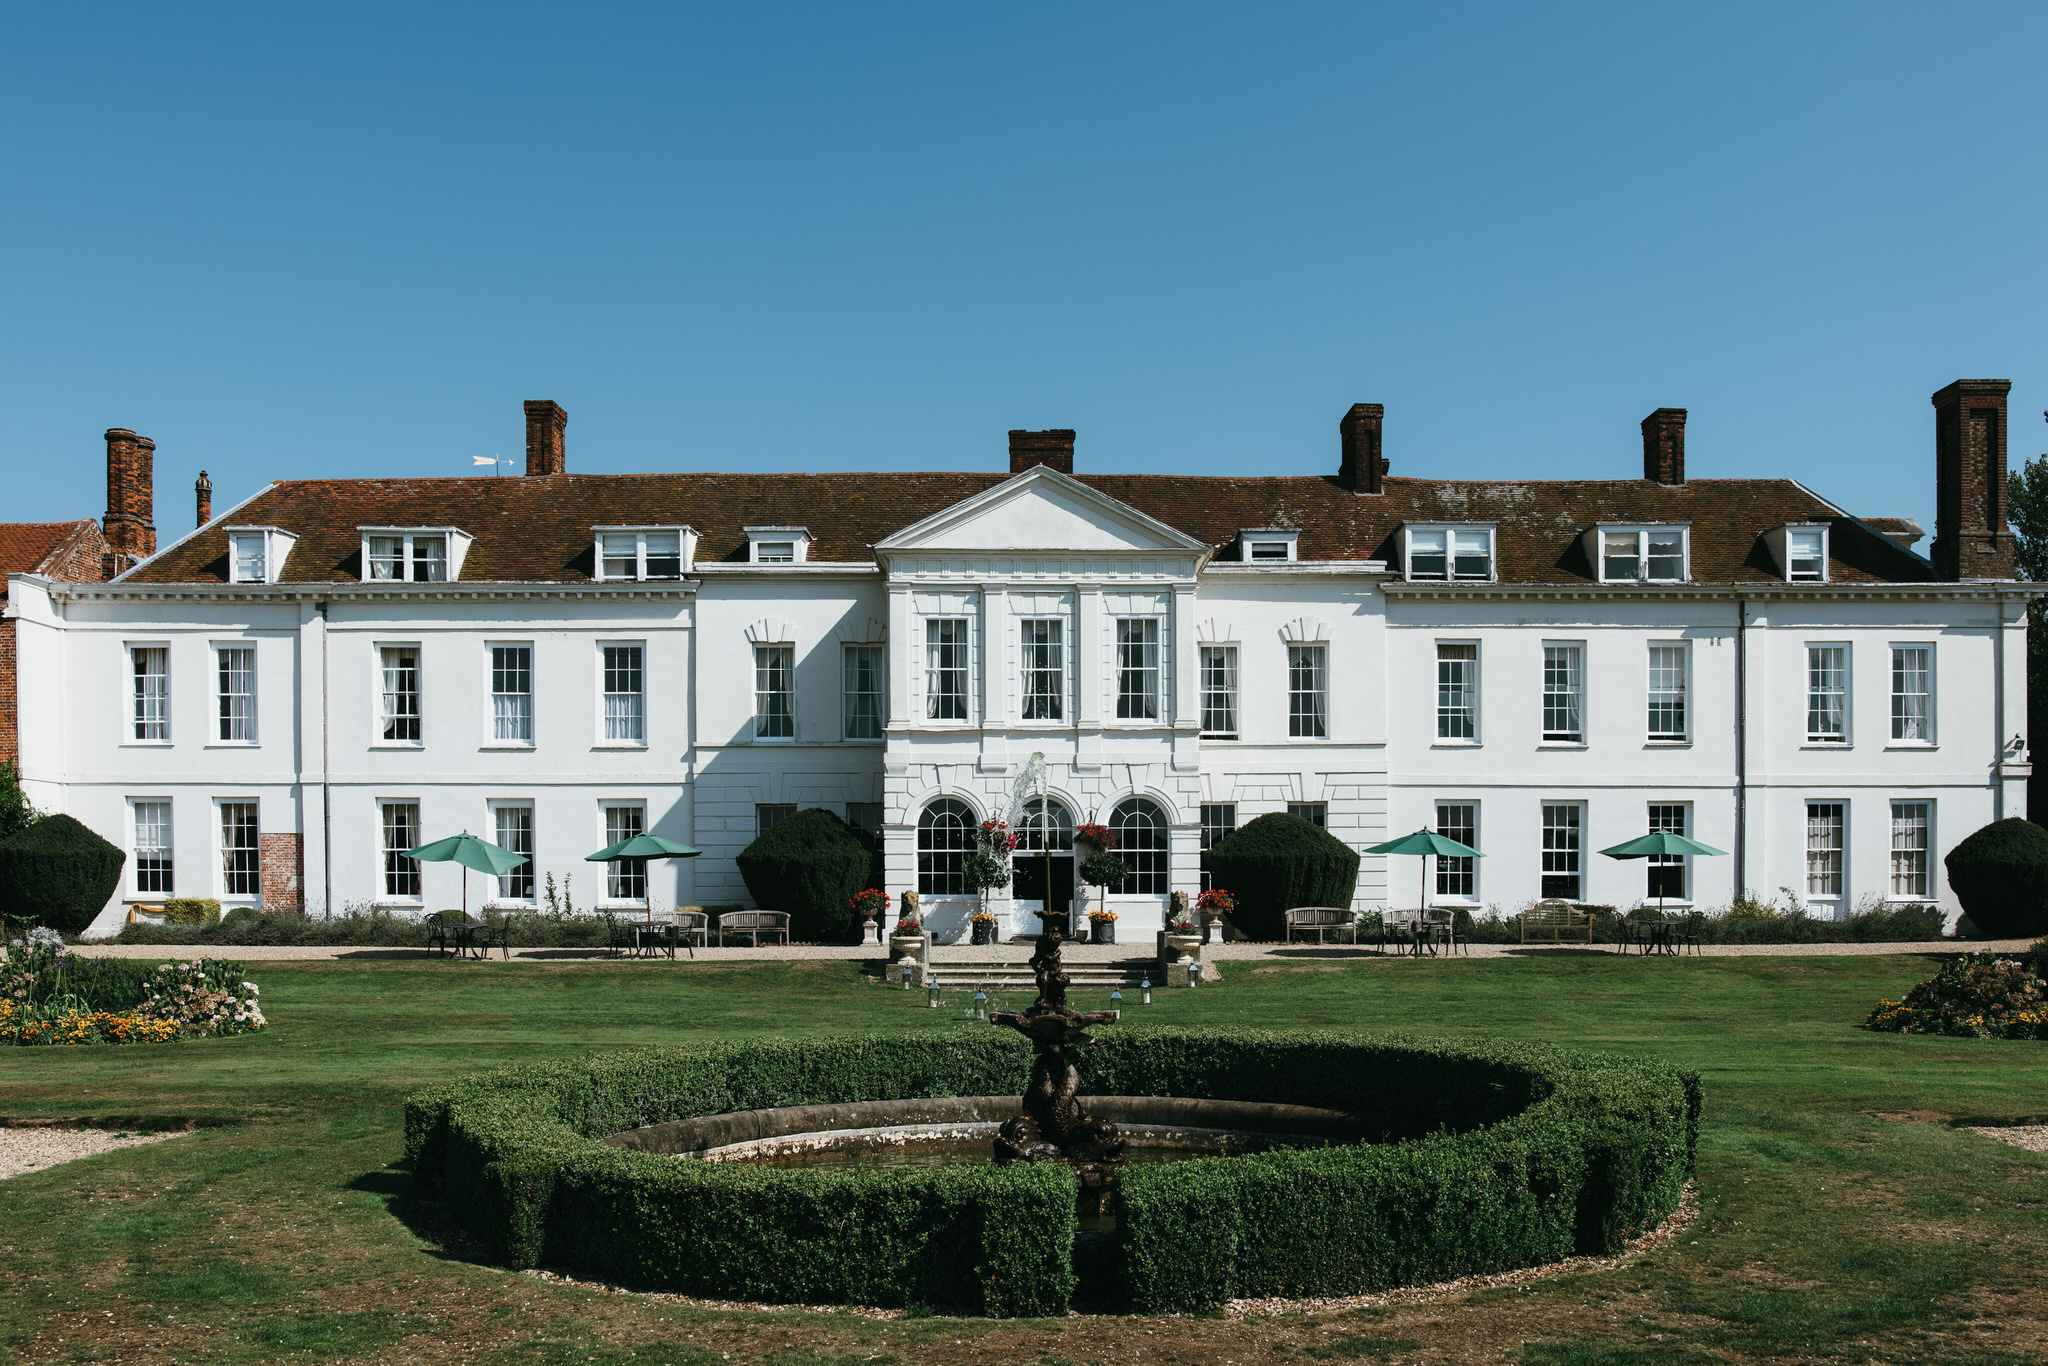 Gosfield hall from the outside